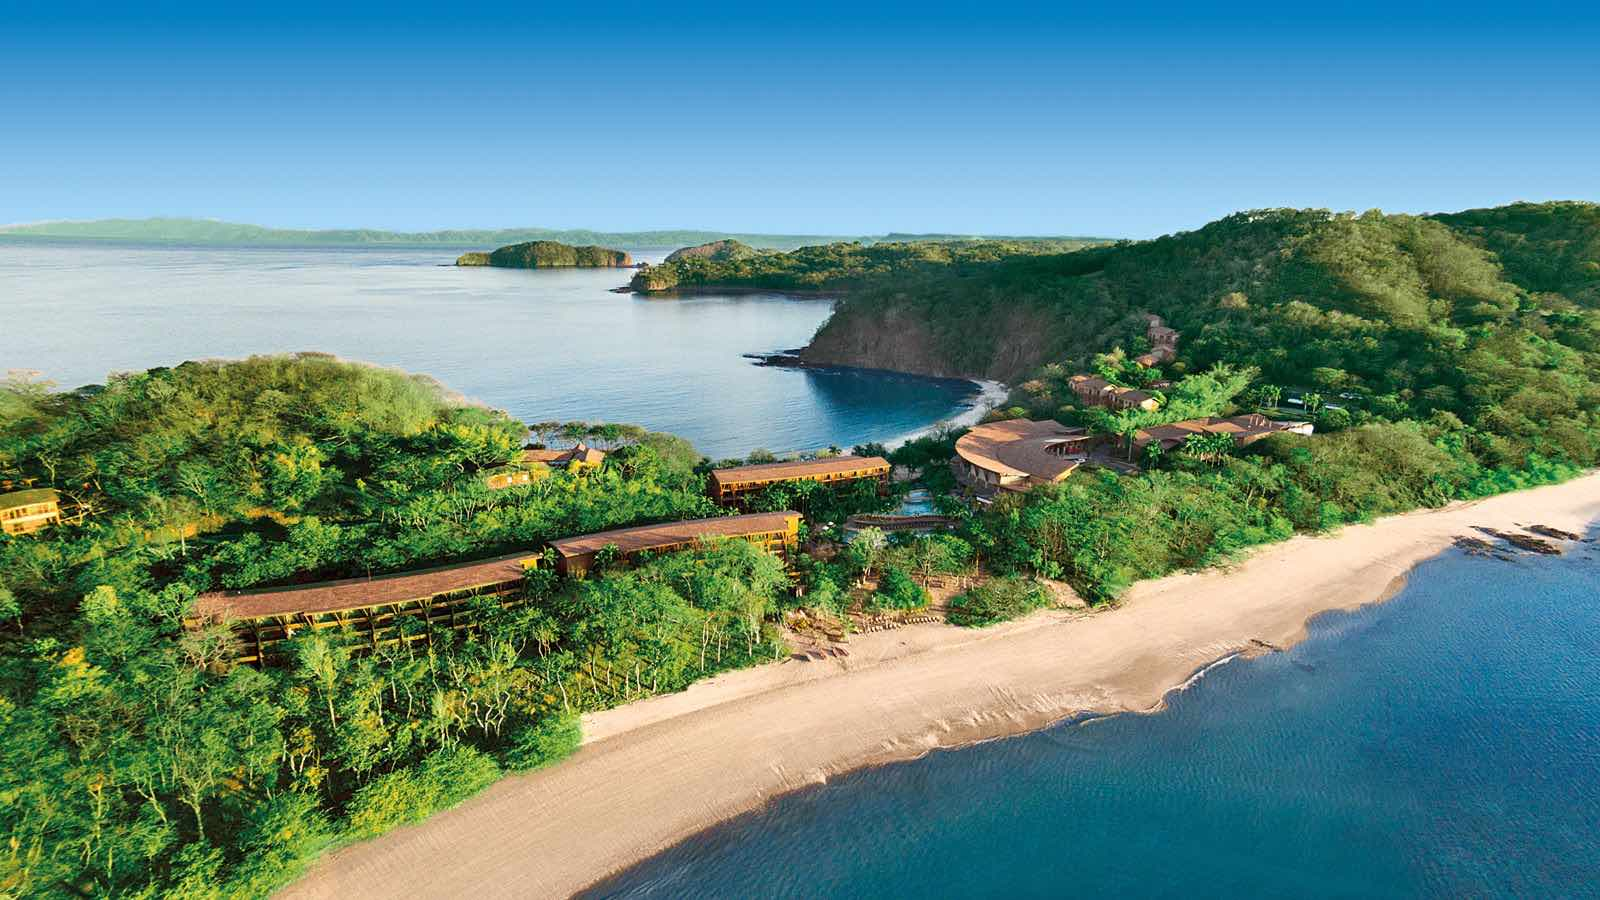 El Four Seasons Resort Costa Rica en Peninsula Papagayo reabrirá pronto